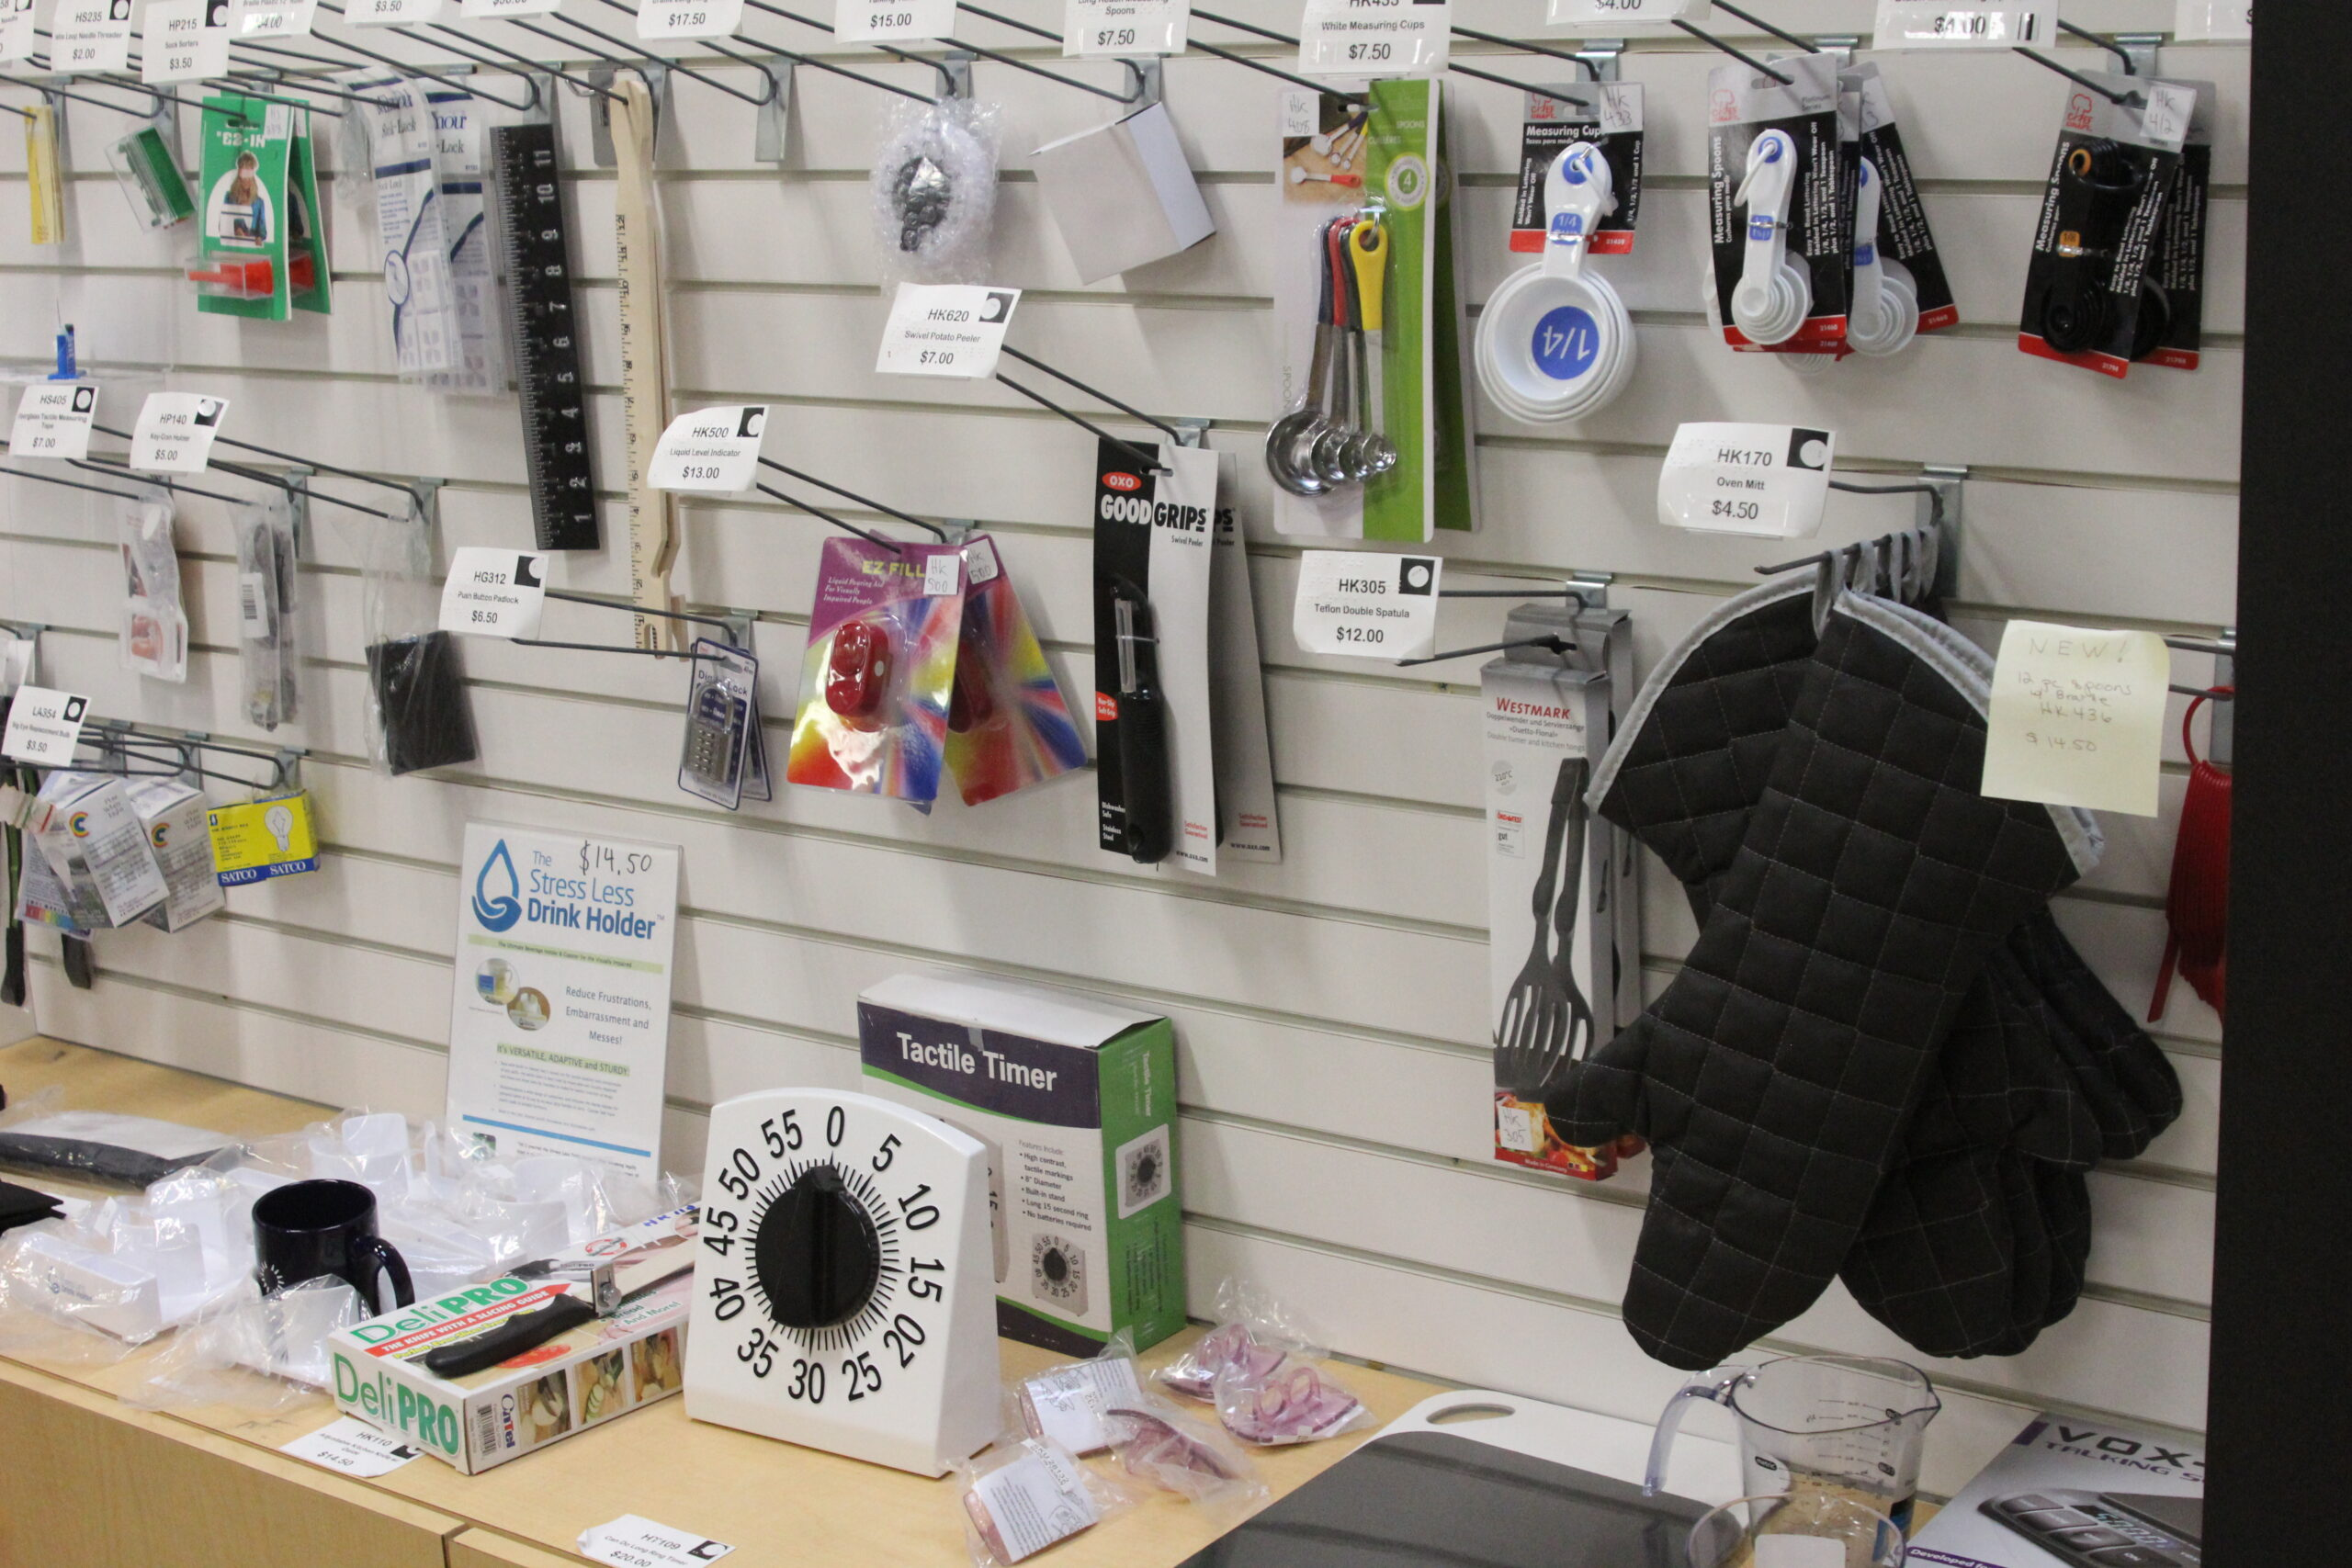 Sharper Vision Store products display